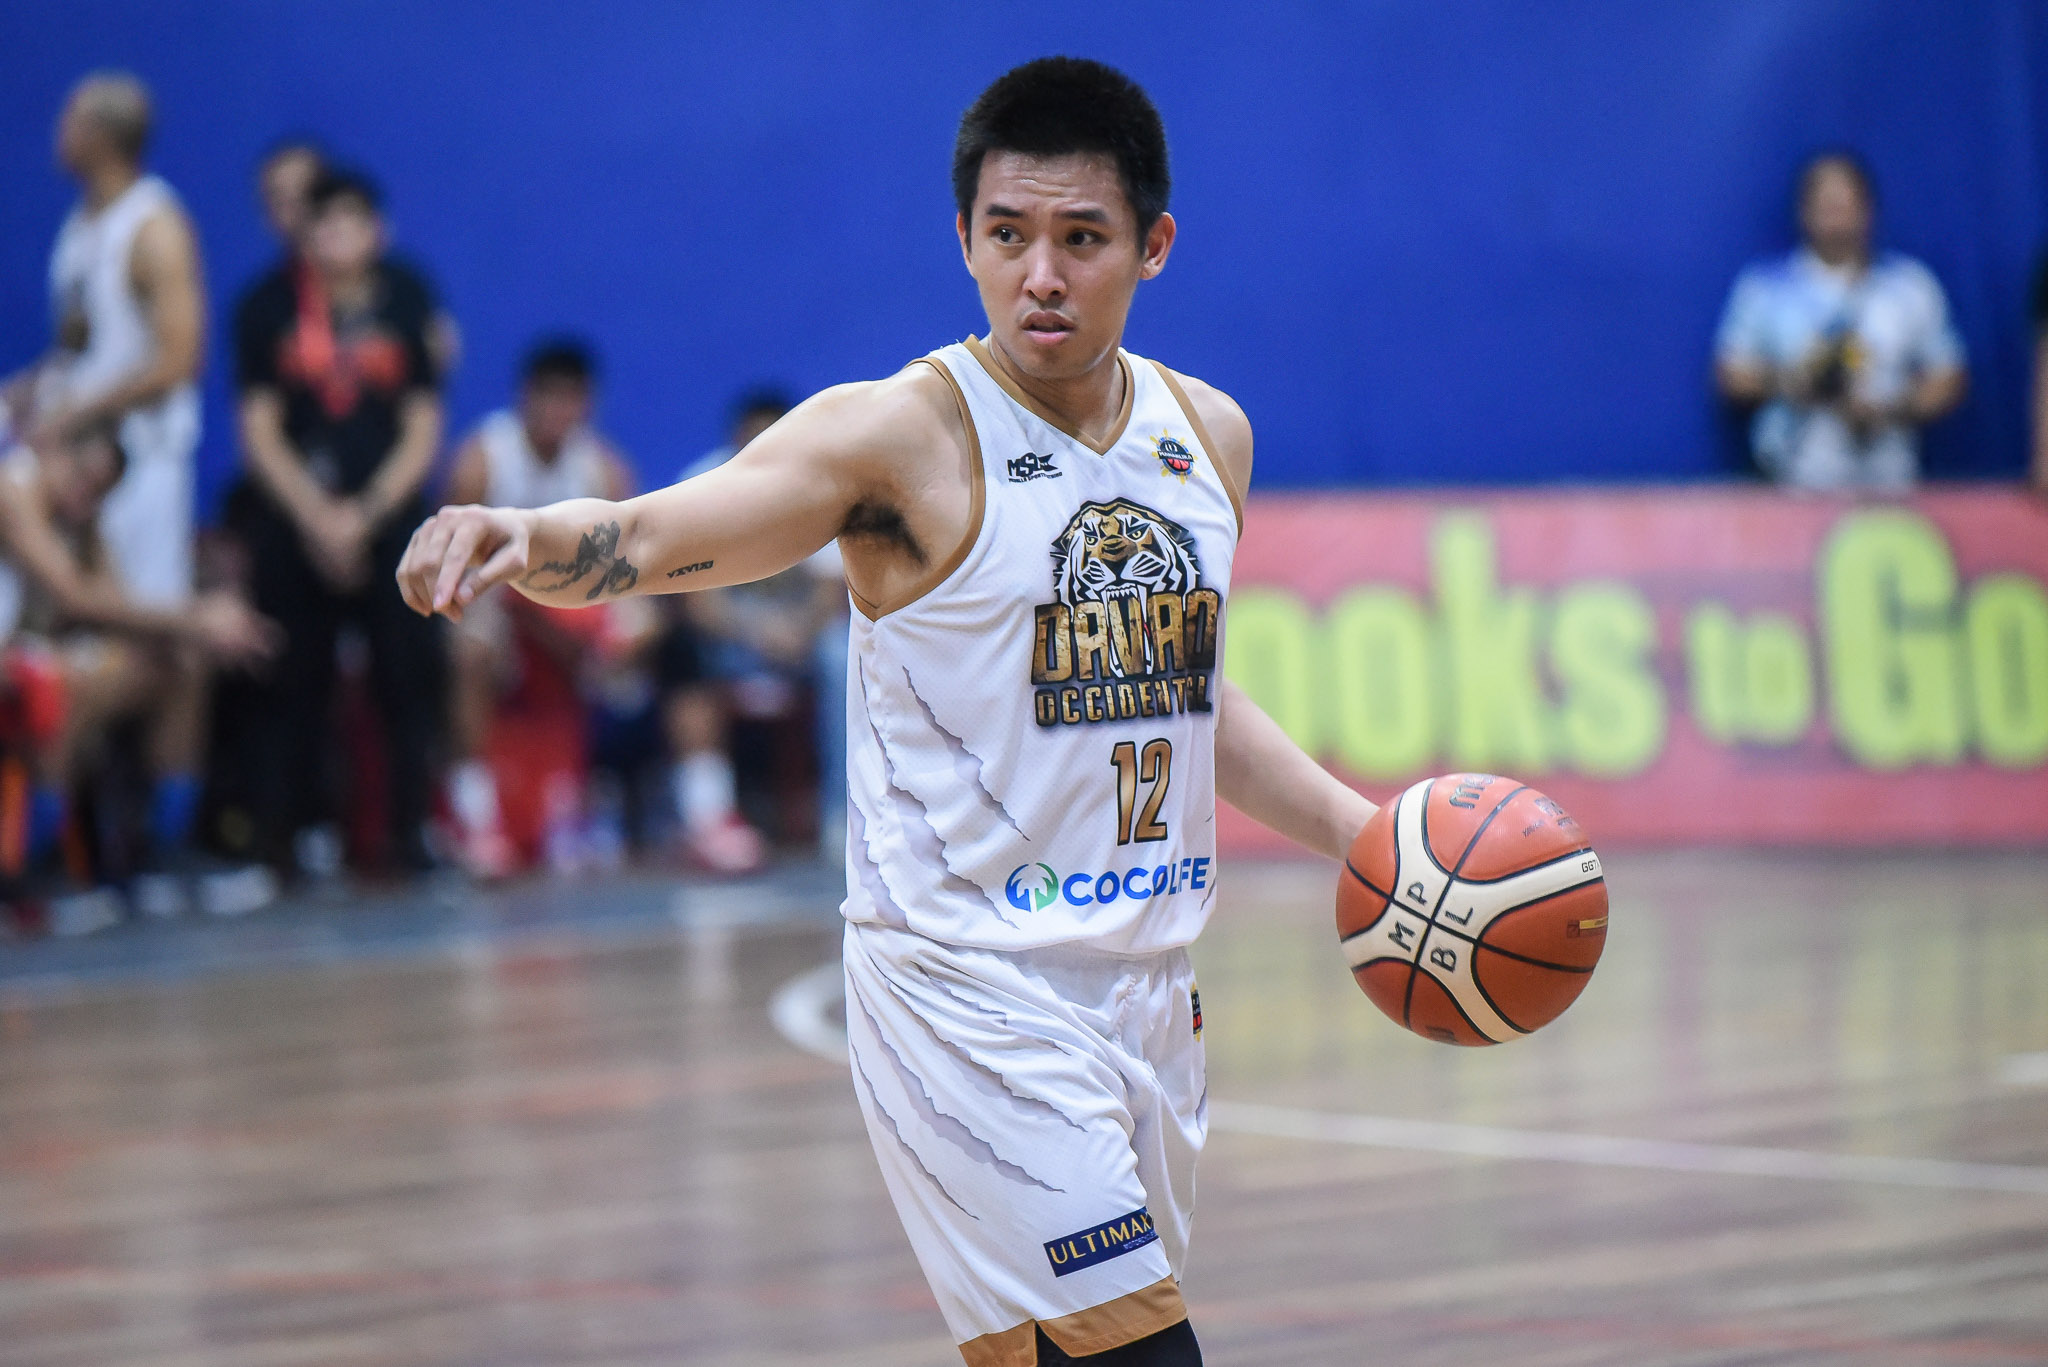 Tiebreaker Times Davao Occidental spoils Rhuel Acot's debut, picks up win no. 21 in MPBL Basketball MPBL News  Yvan Ludovice Rhuel Acot Makati Super Crunch Kenneth Mocon Juneric Baloria Joseph Sedurifa Don Dulay Davao Occidental Tigers Billy Ray Robles 2019-20 MPBL Lakan Cup